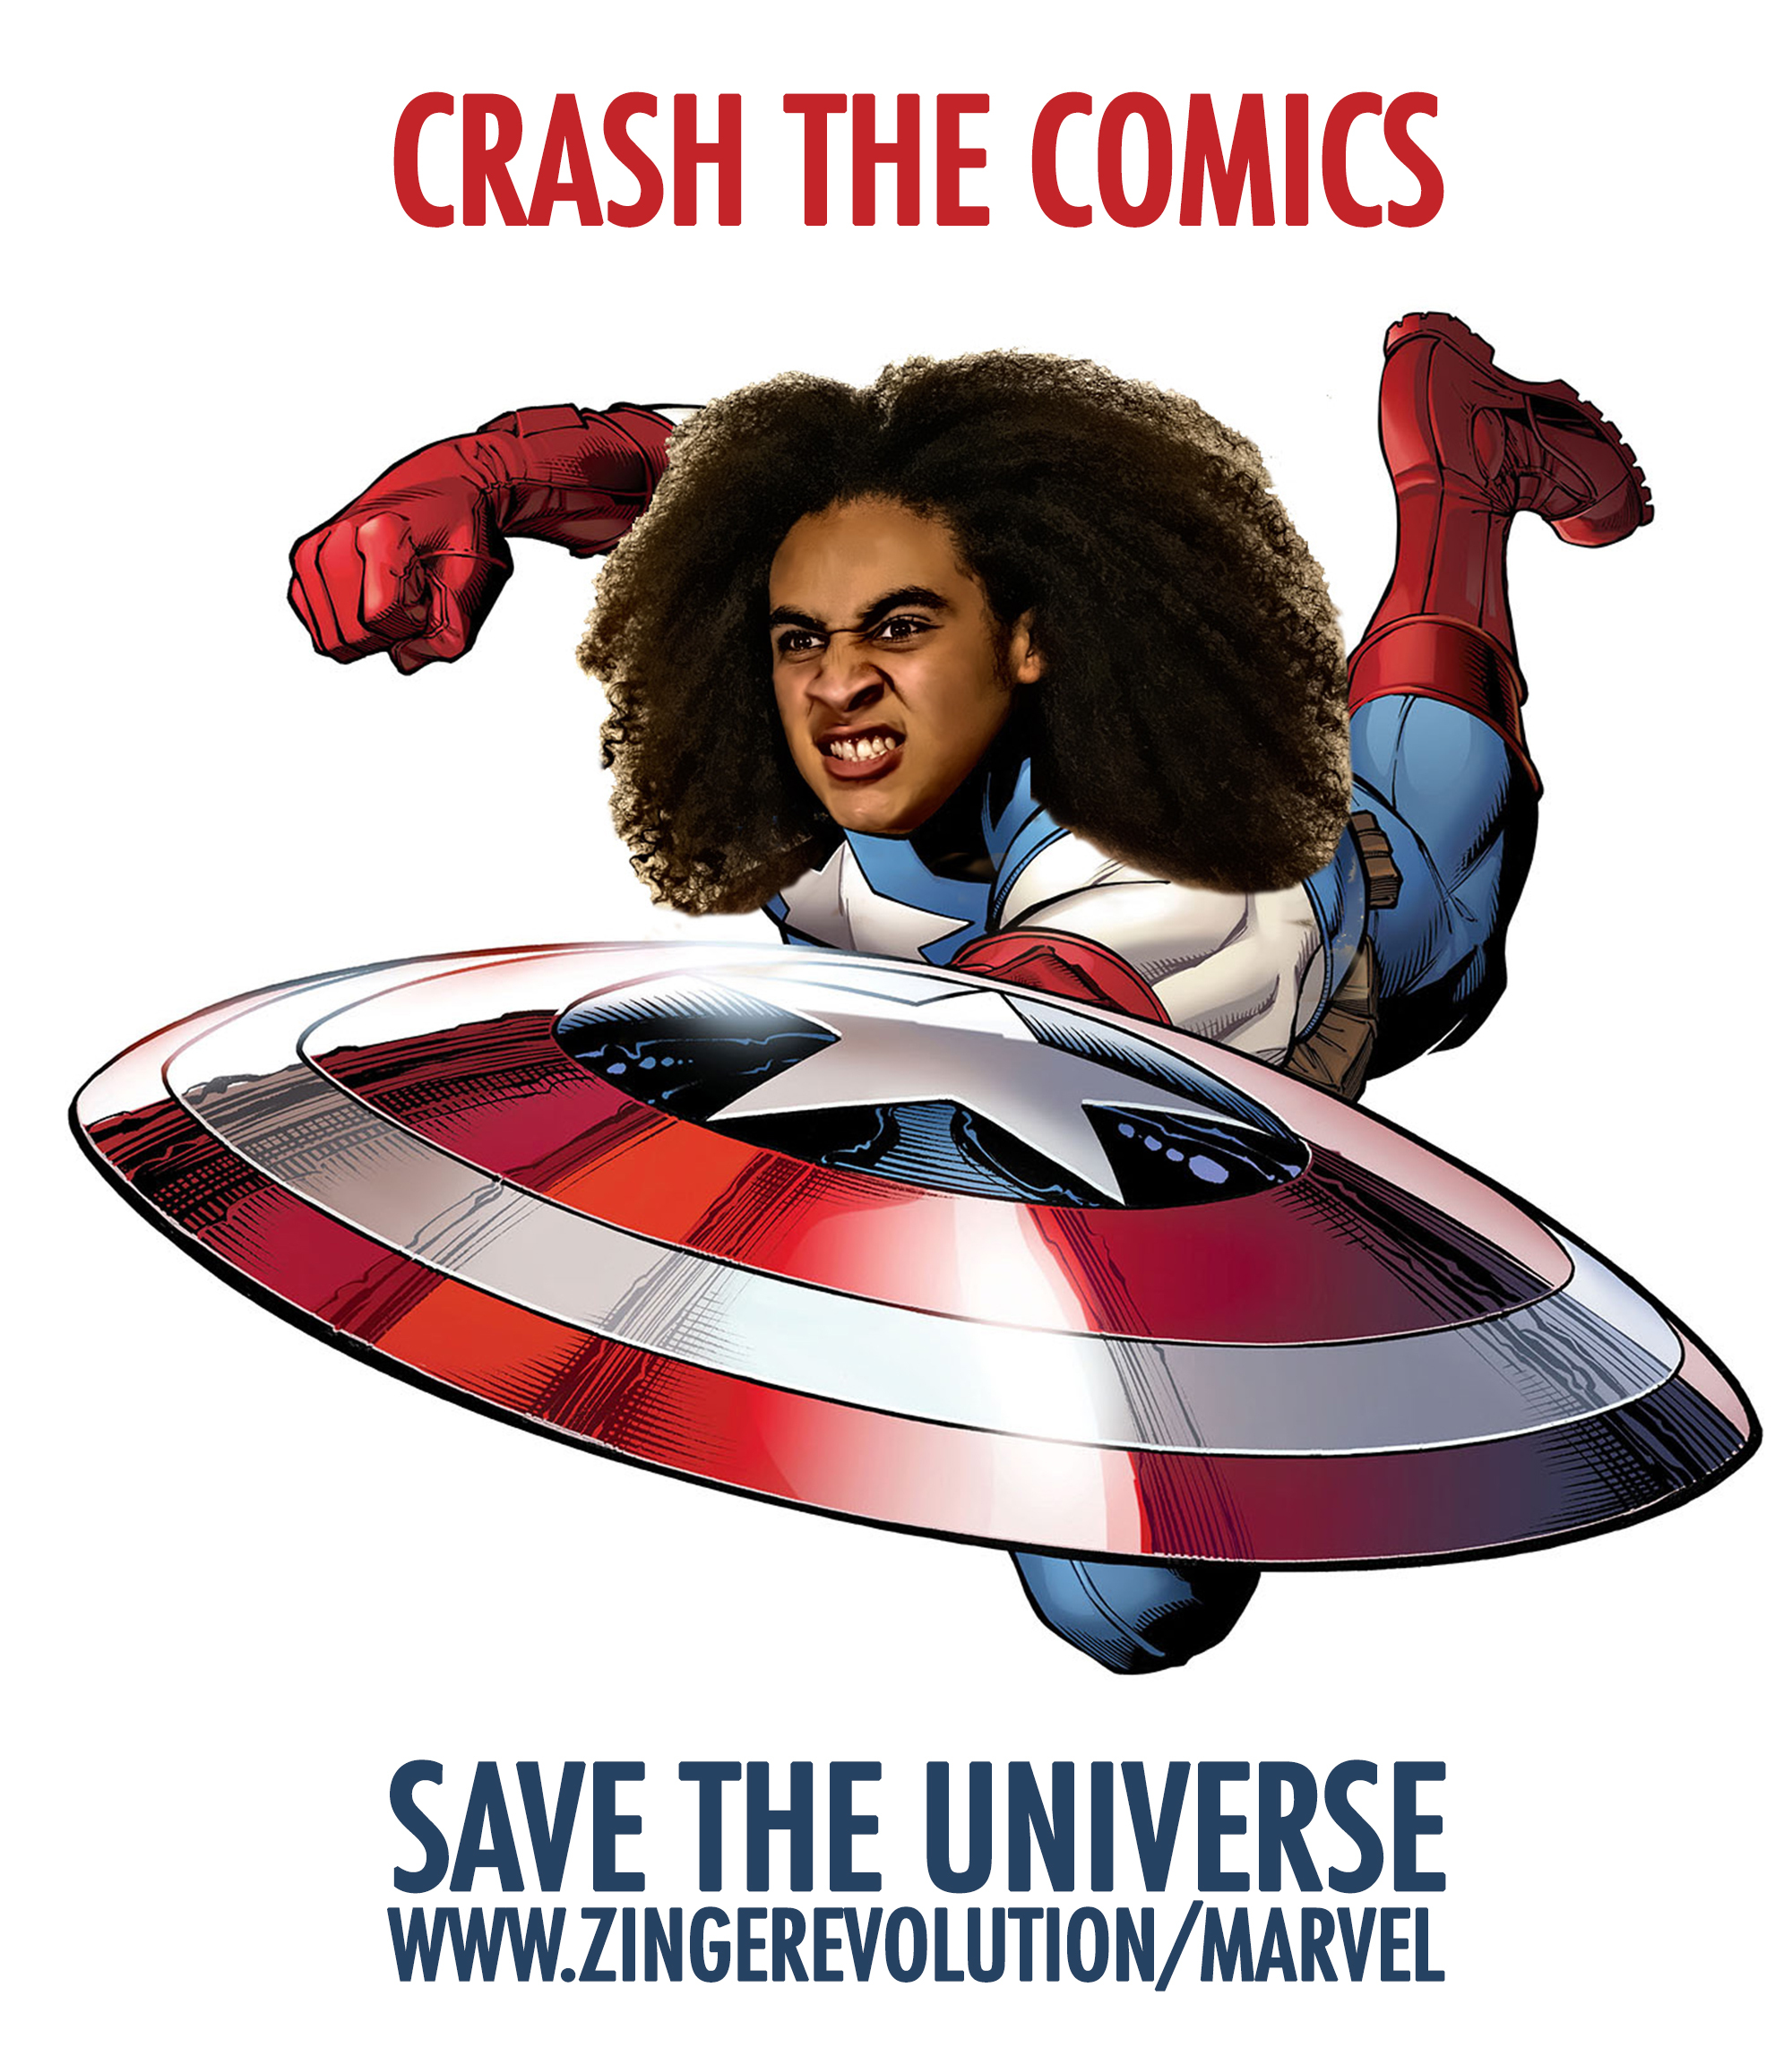 Crash The Comics, Save the Universe with Zing Revolution! (Graphic: Business Wire)